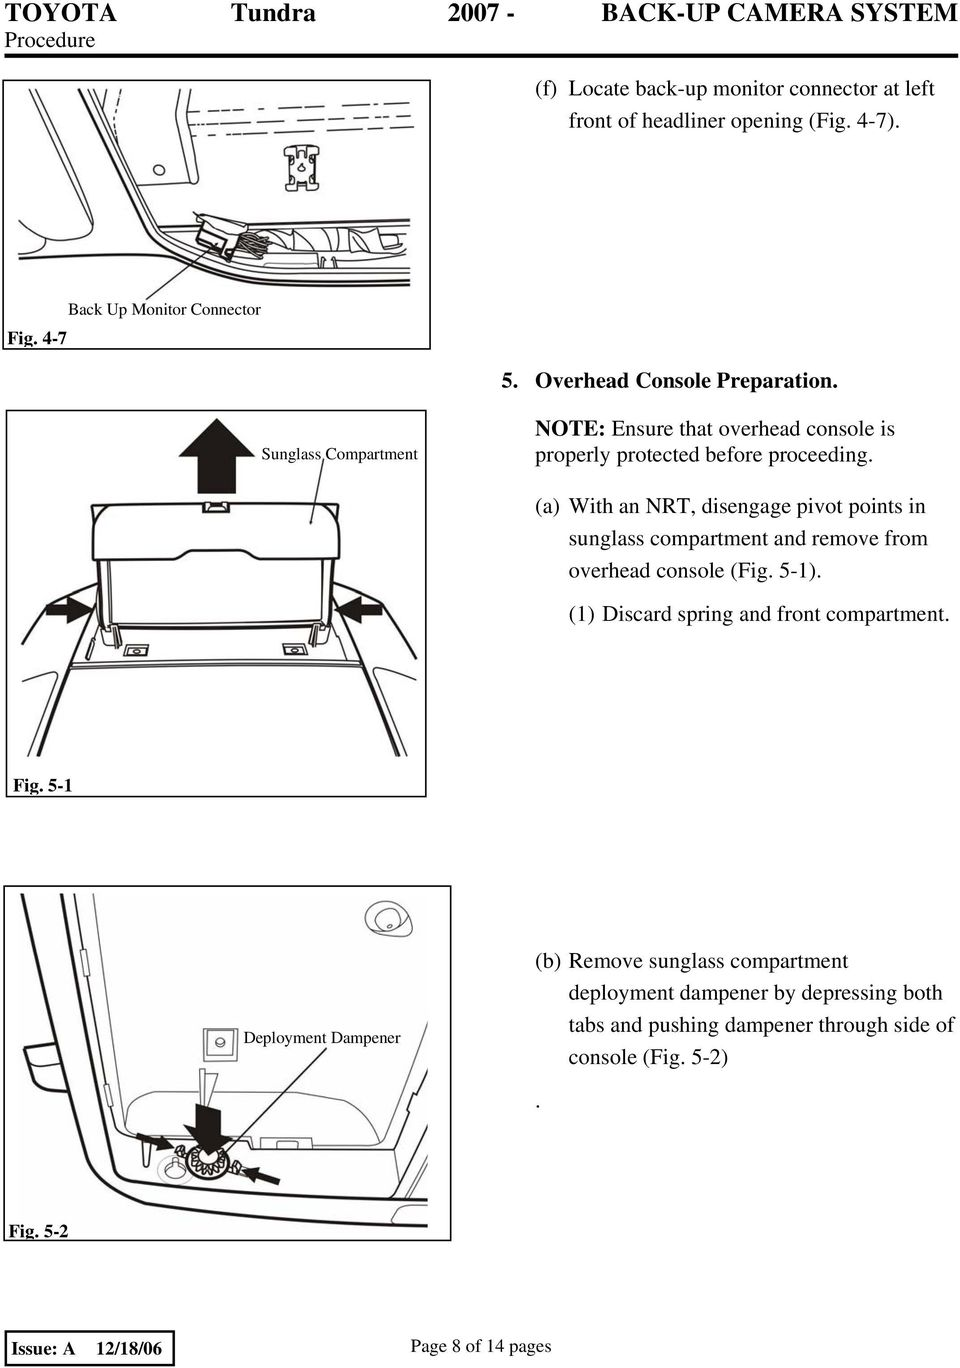 (a) With an NRT, disengage pivot points in sunglass compartment and remove from overhead console (Fig. 5-1).